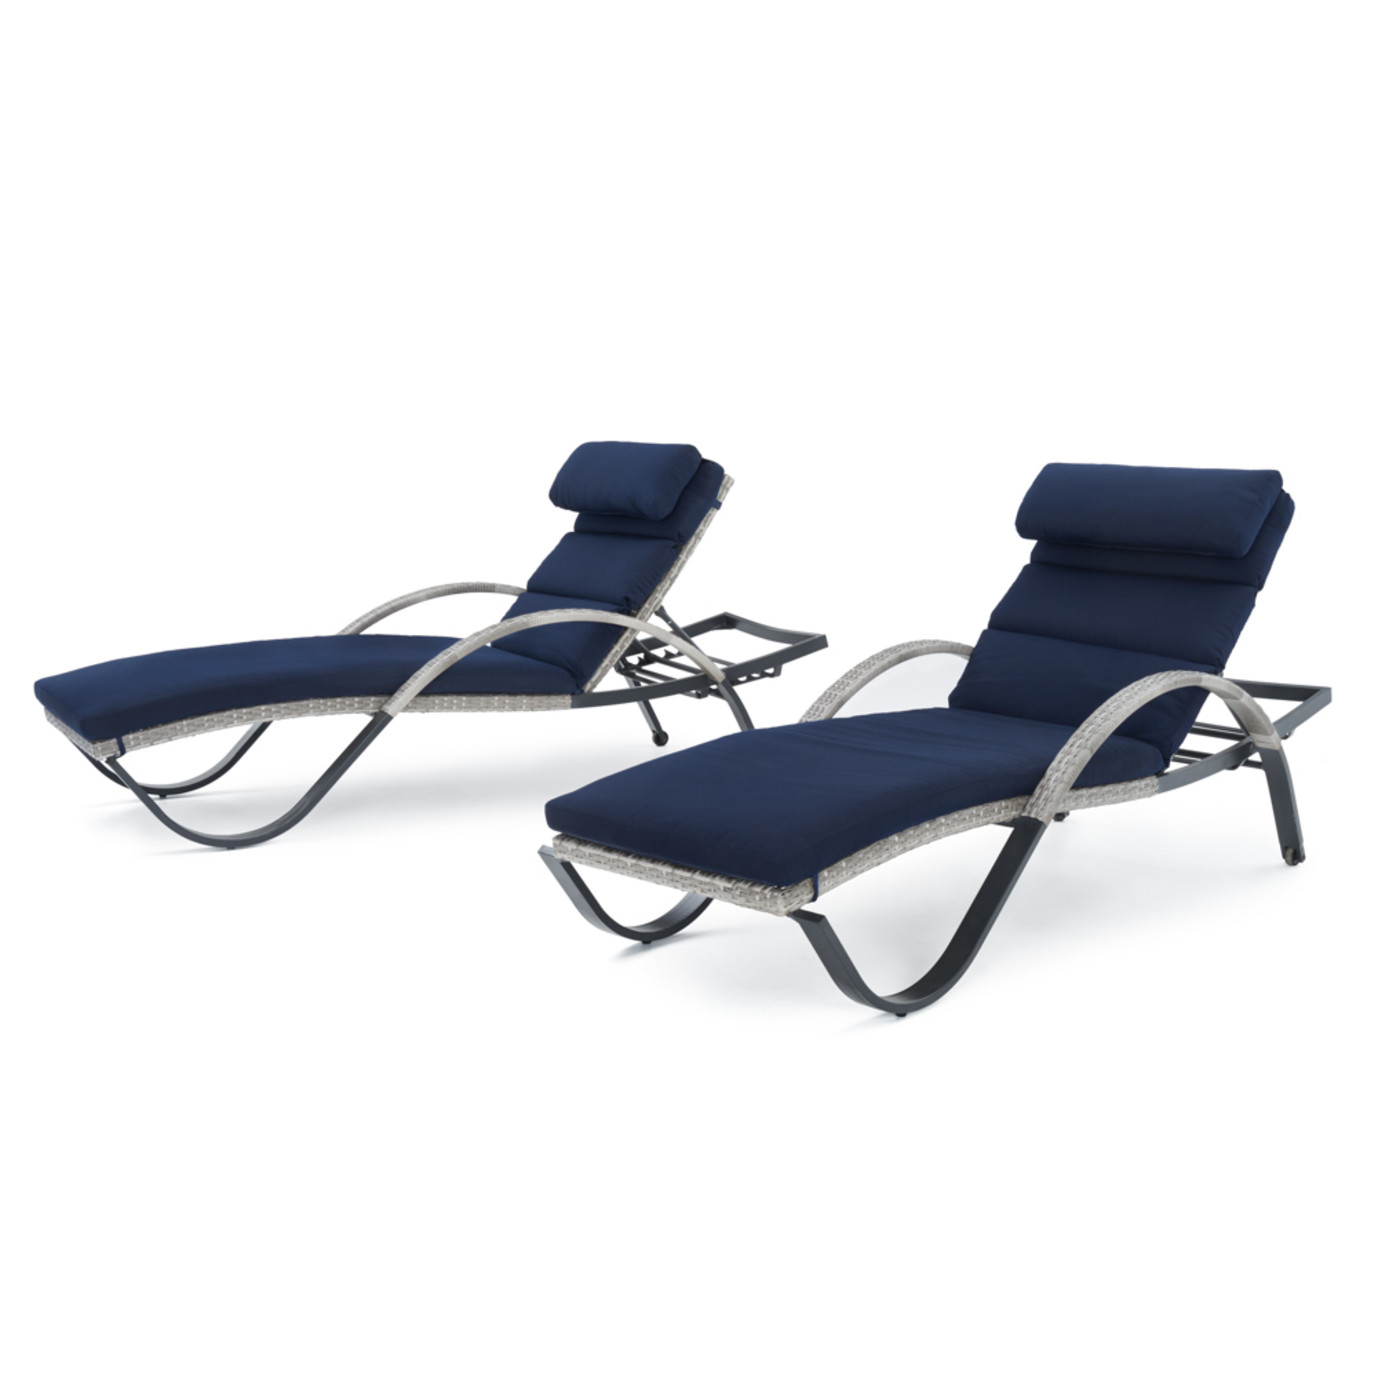 Cannes Chaise Lounges With Cushion And Pillow Navy Blue